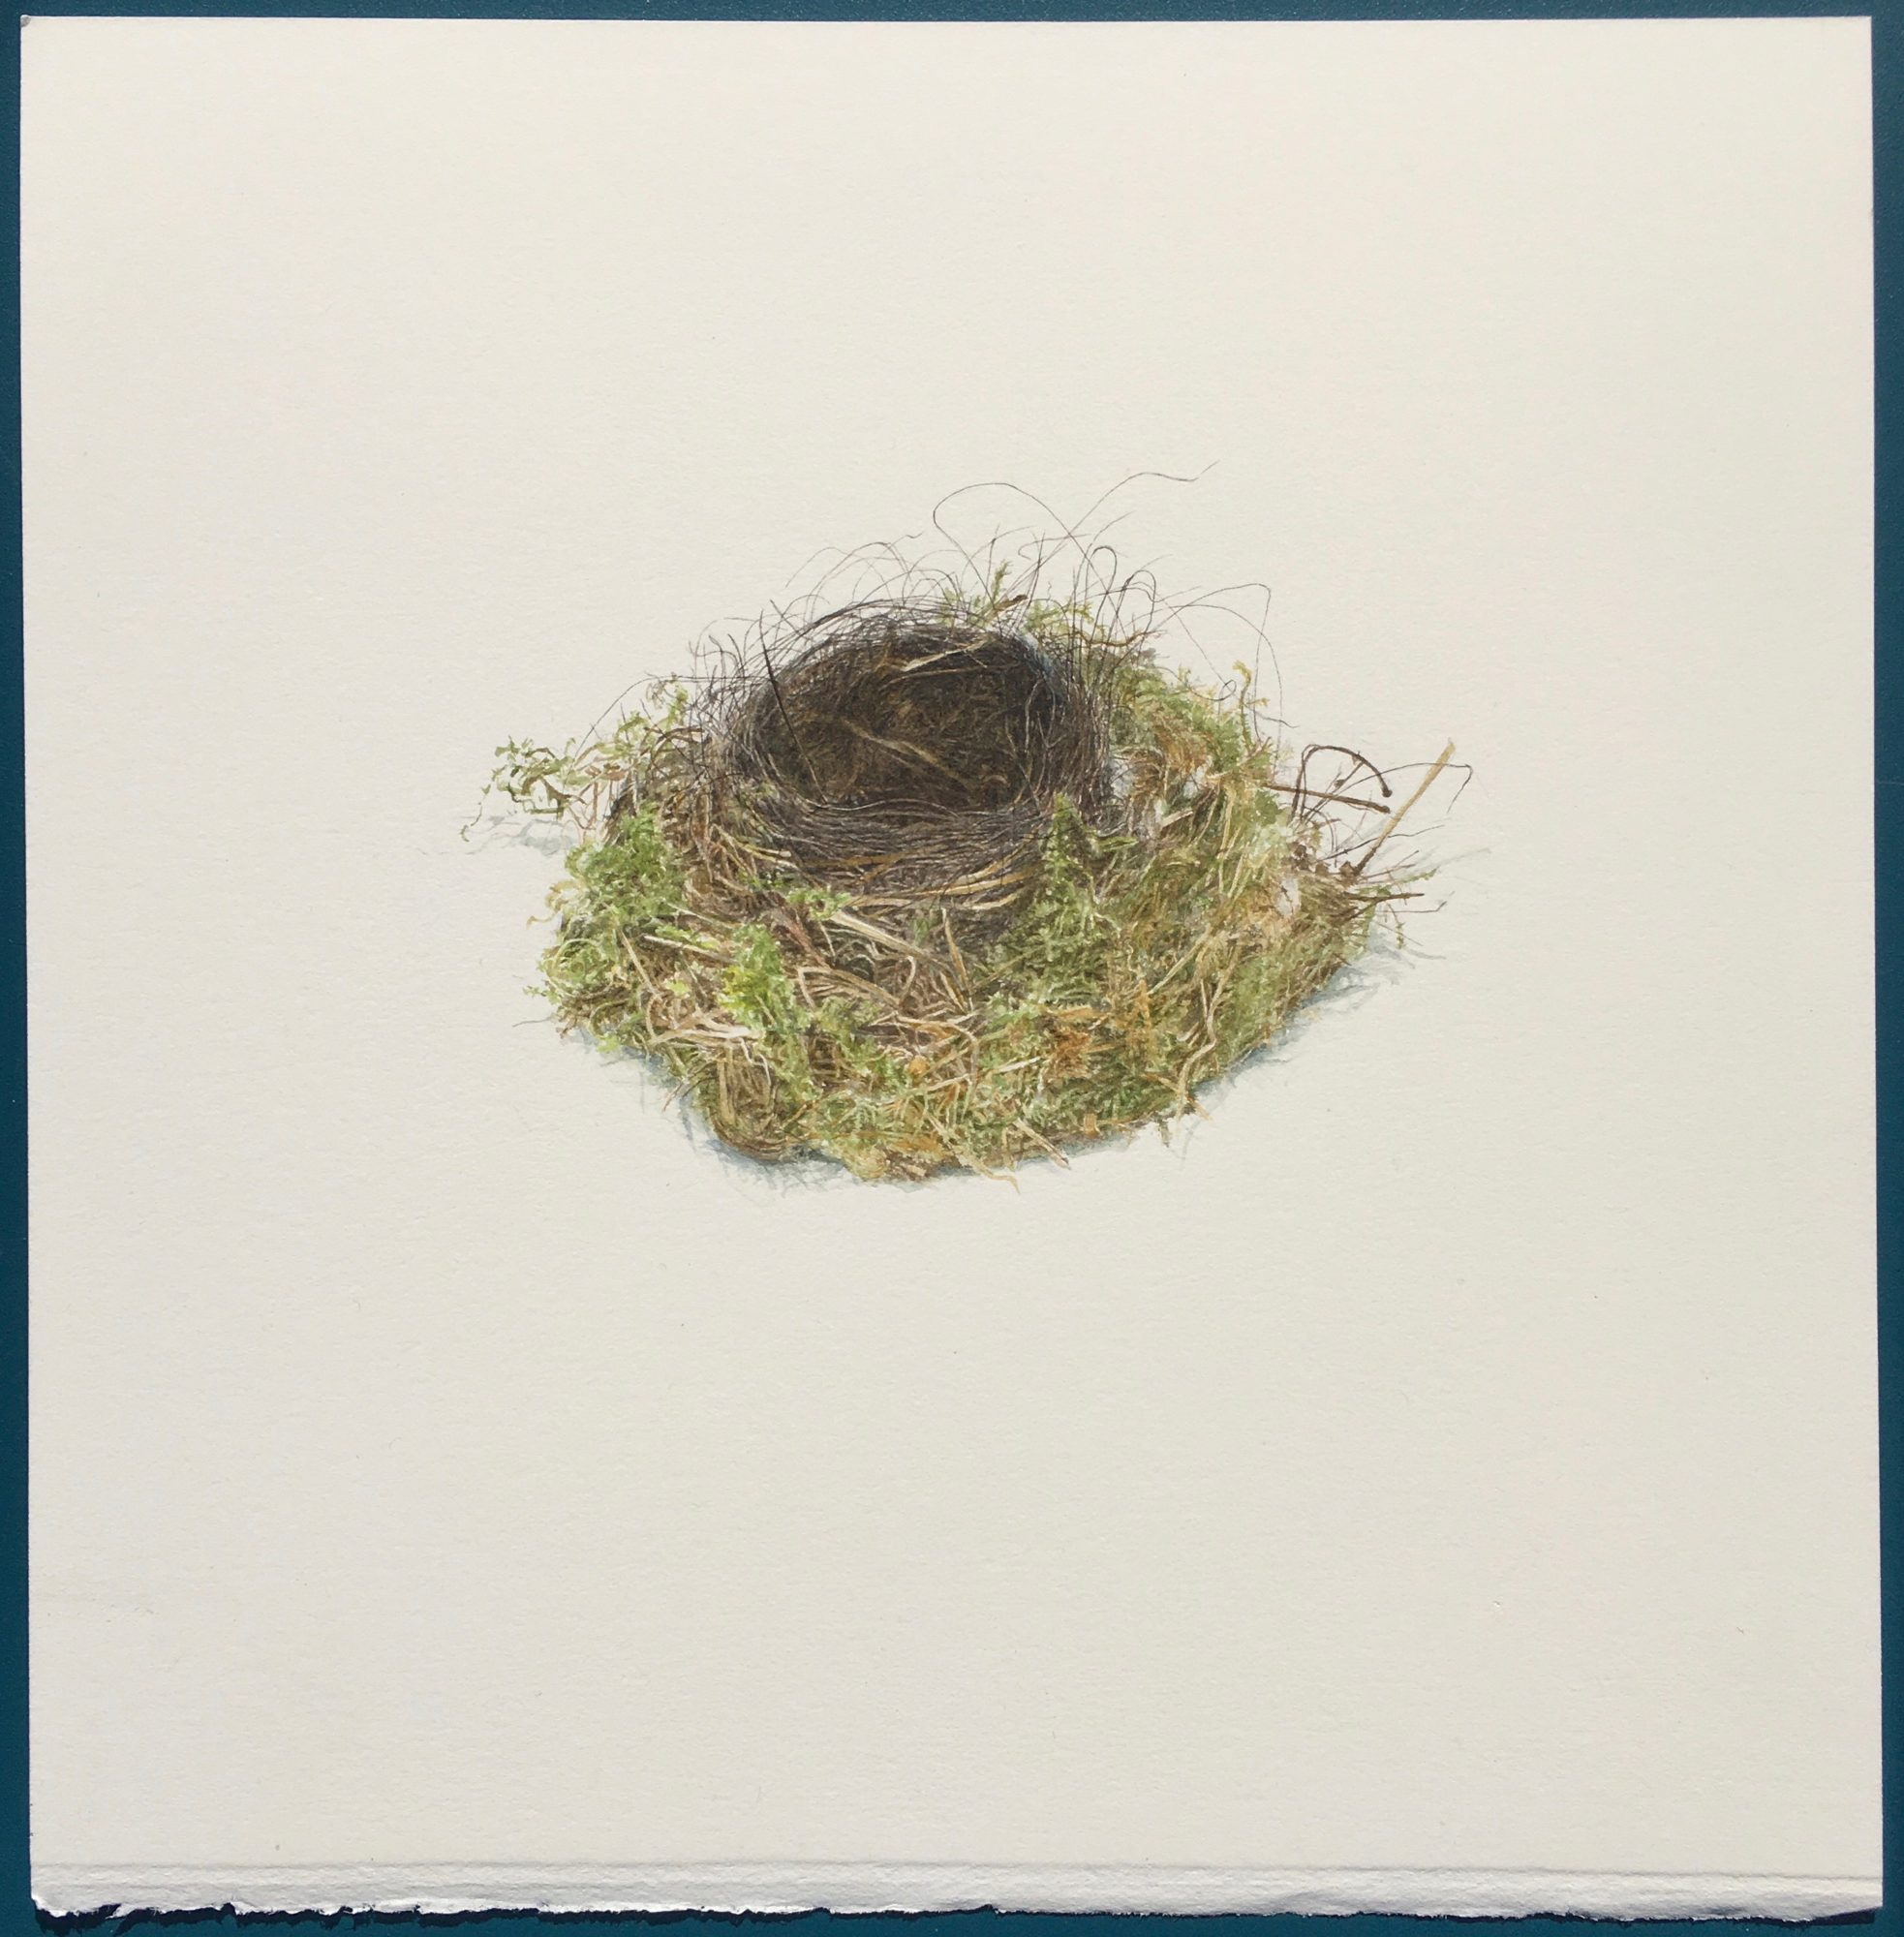 Nest that Tracy and Mark found